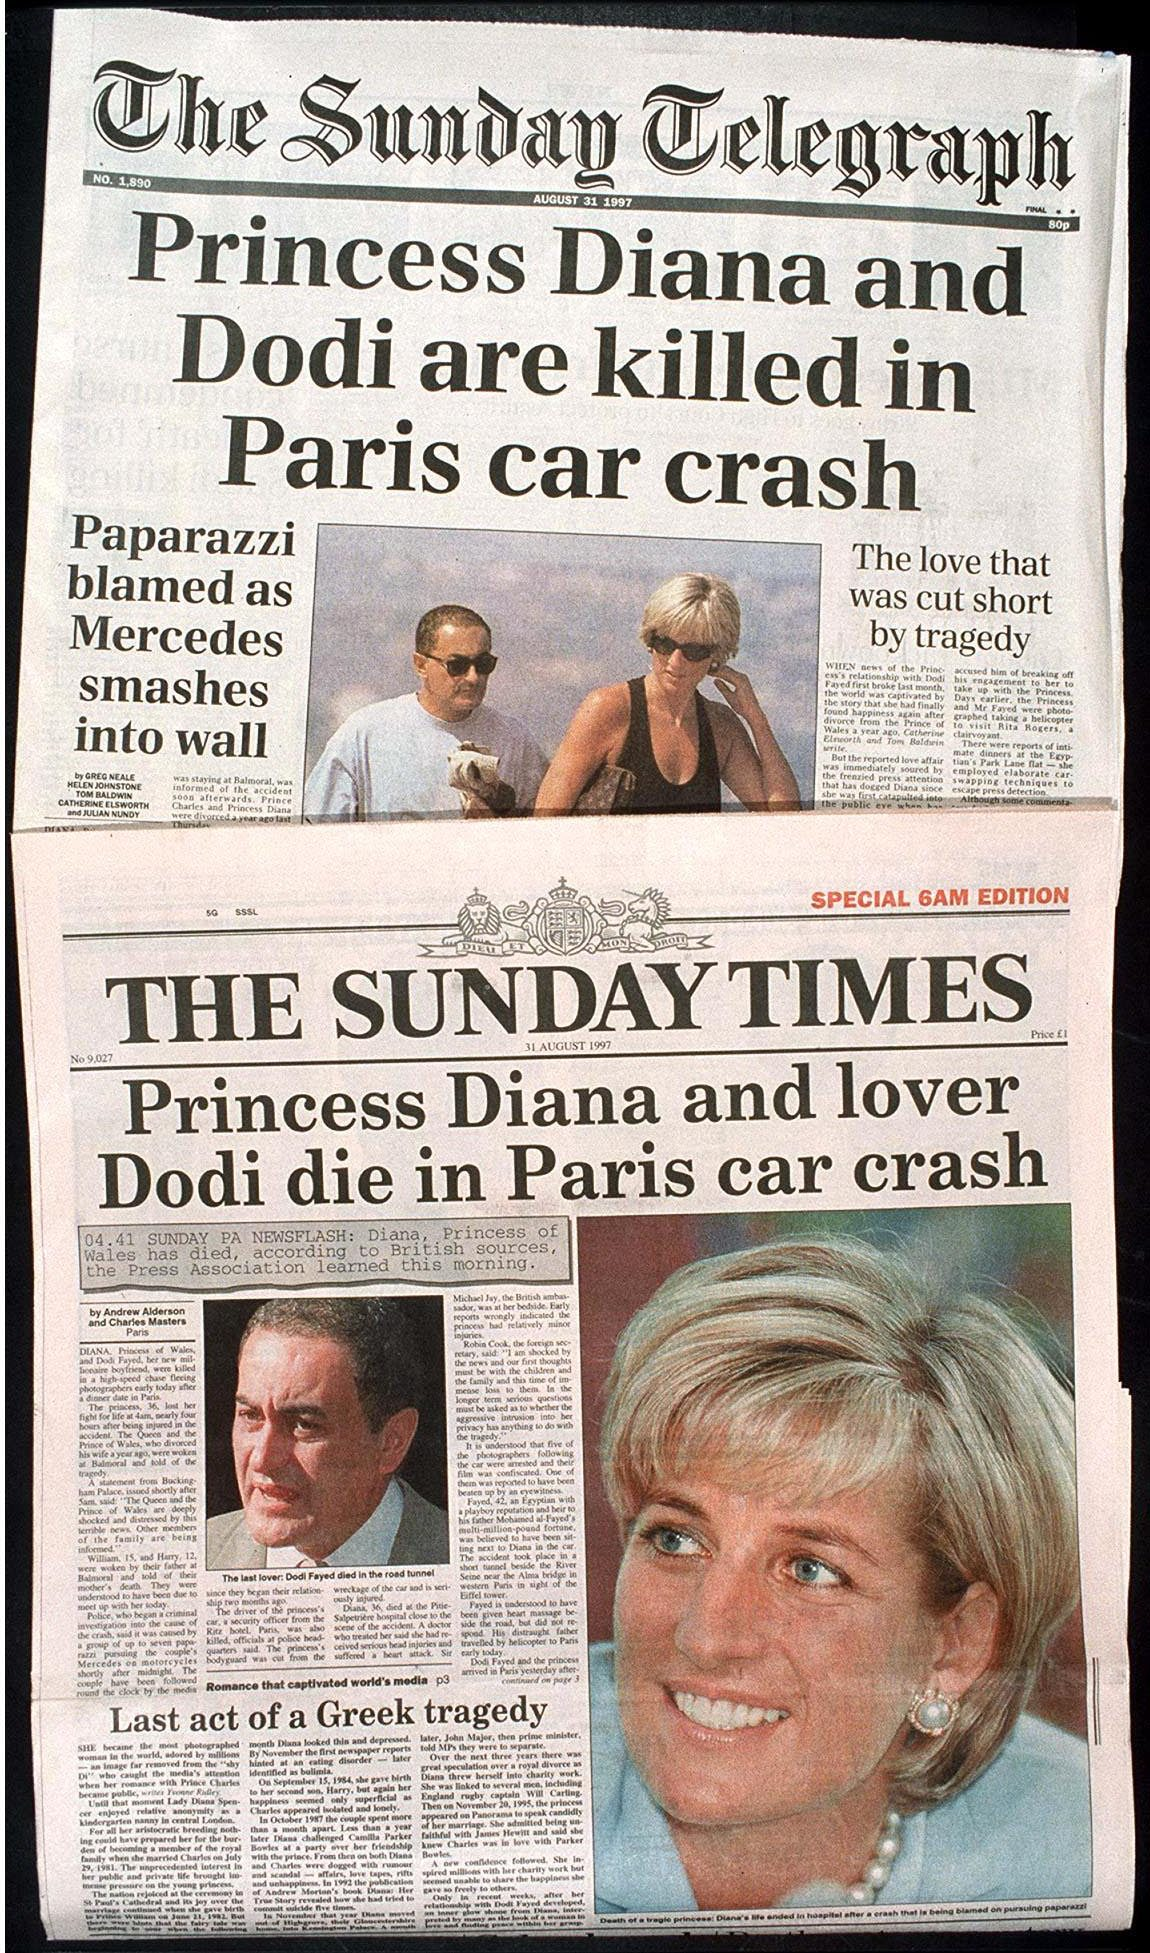 DEATH OF PRINCESS DIANA AND DODI AL FAYED AS REPORTED ON THE FRONT COVERS OF NEWSPAPERS - SEP 1997